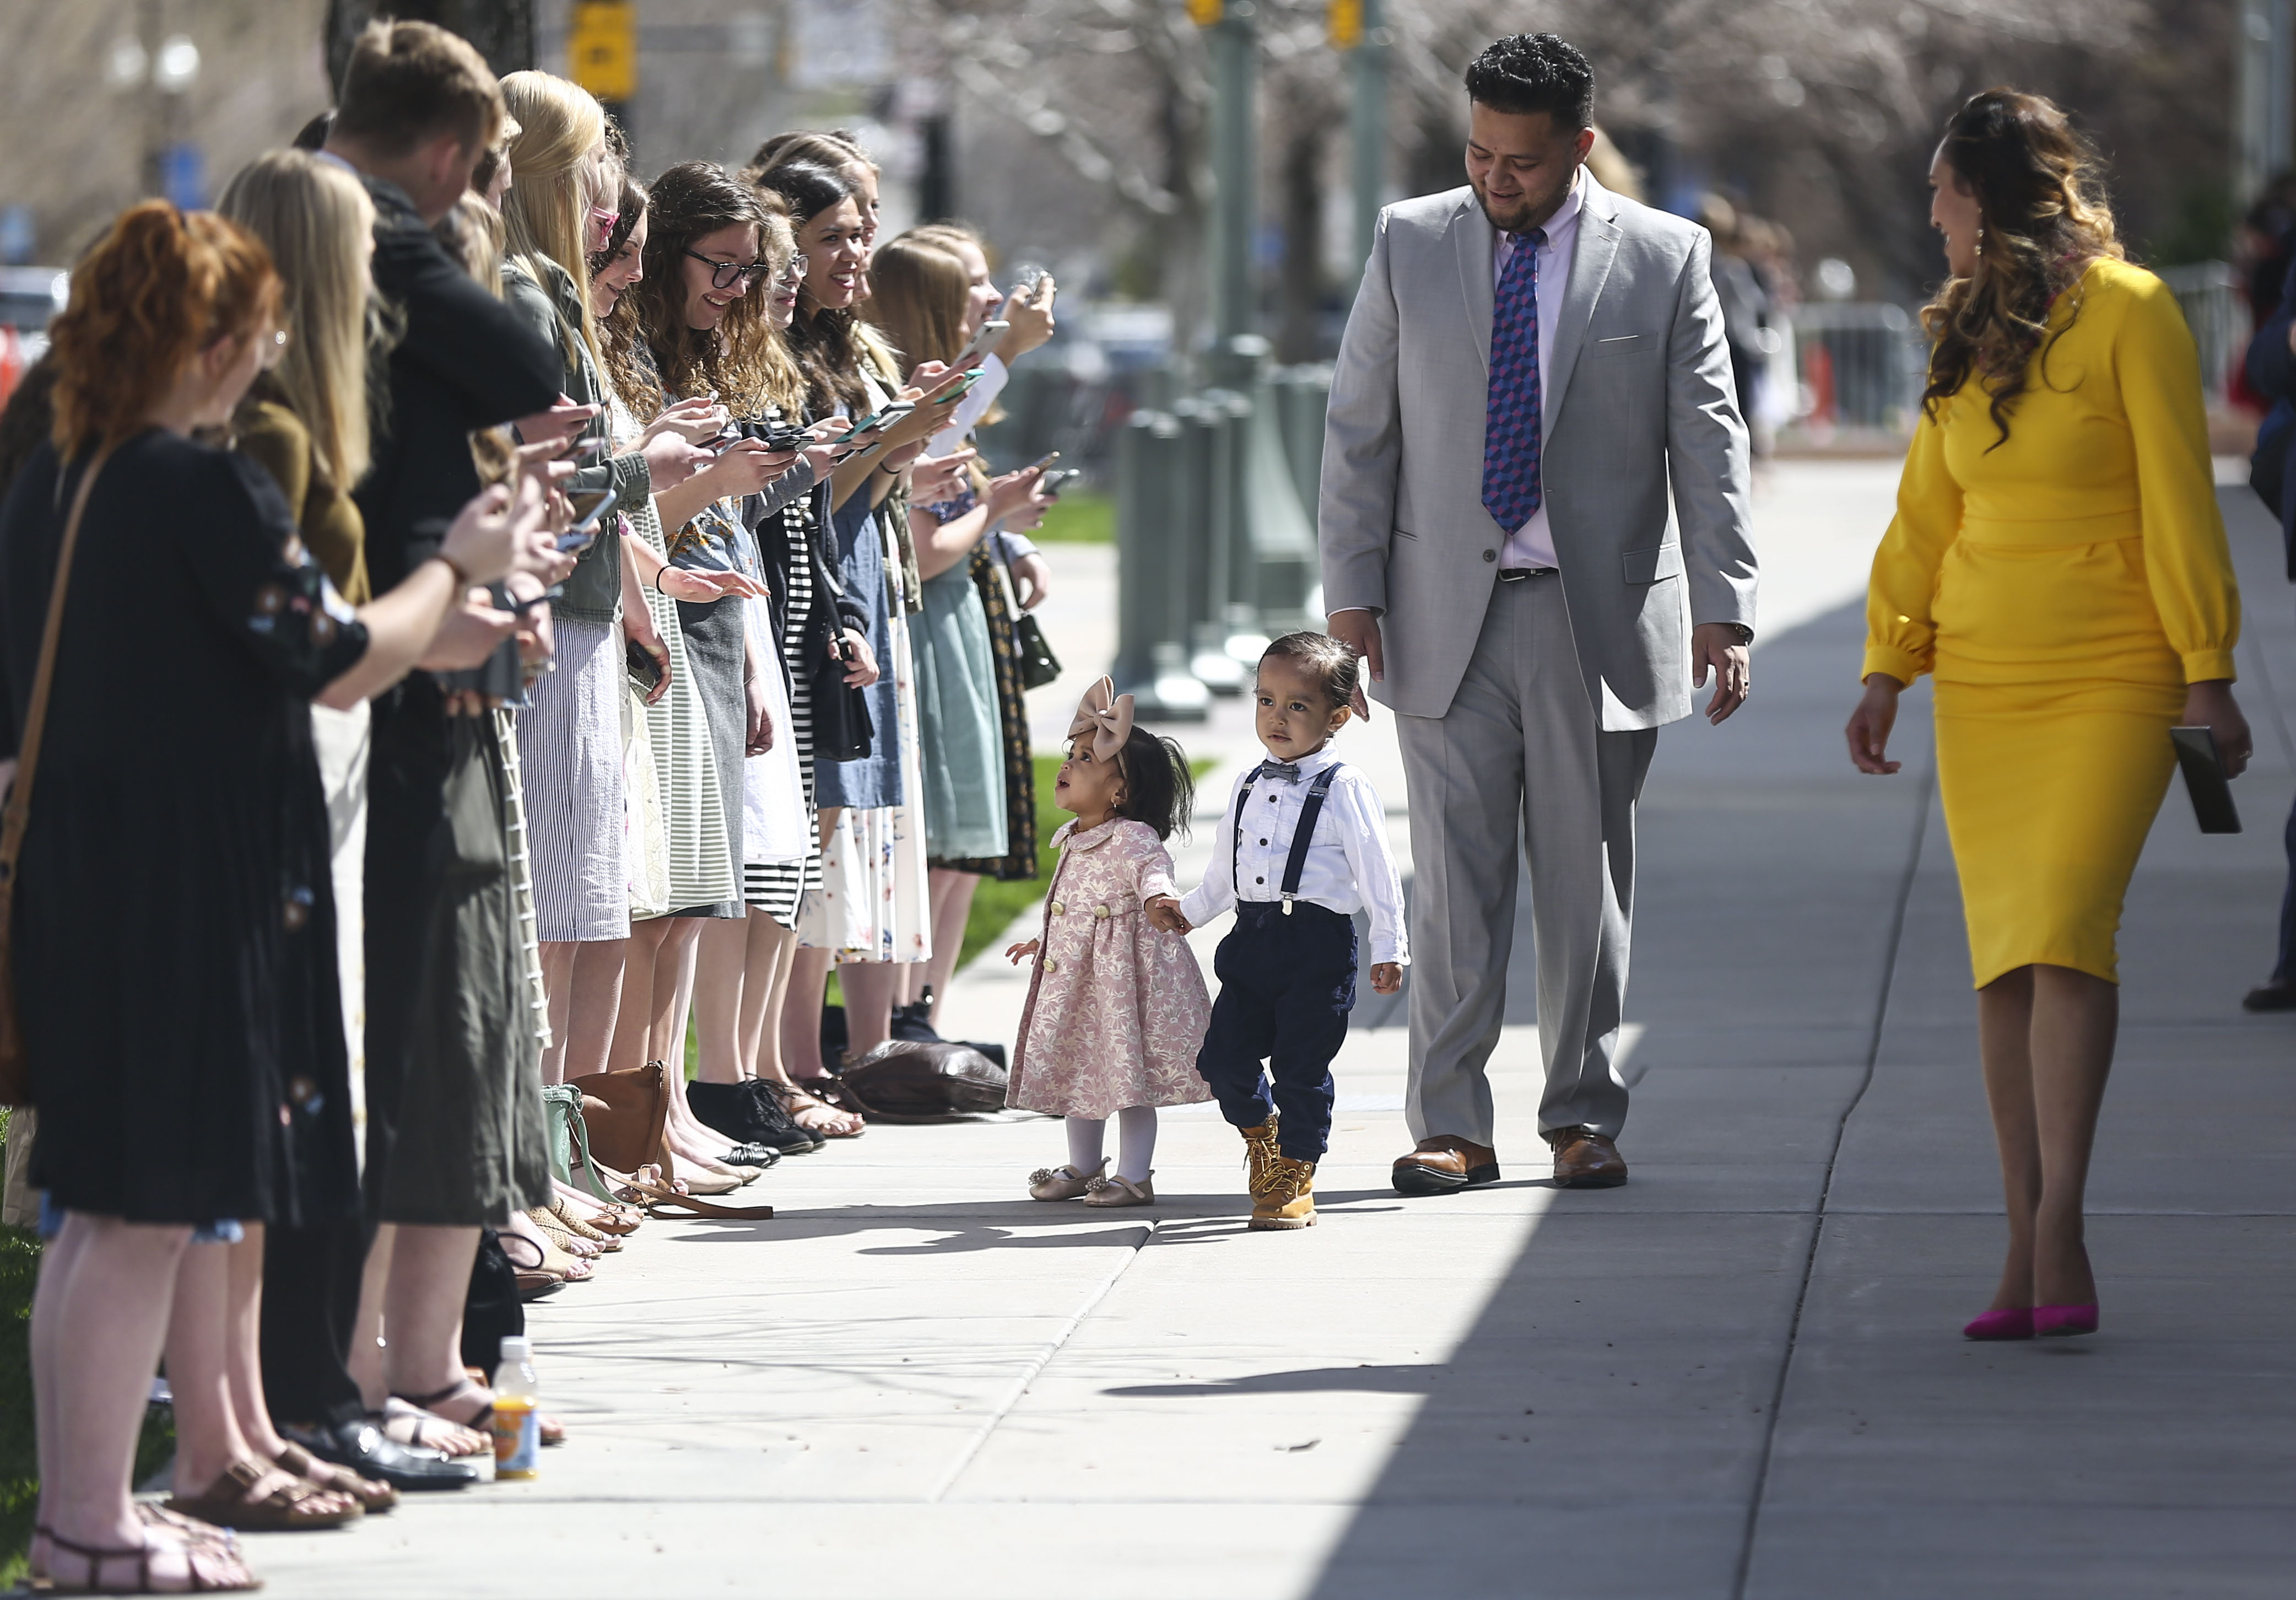 Conferencegoers sing outside the Conference Center while attendees leave after the Sunday morning session of the 189th Annual General Conference of the Church of Jesus Christ of Latter-day Saints in Salt Lake City on Sunday, April 7, 2019.